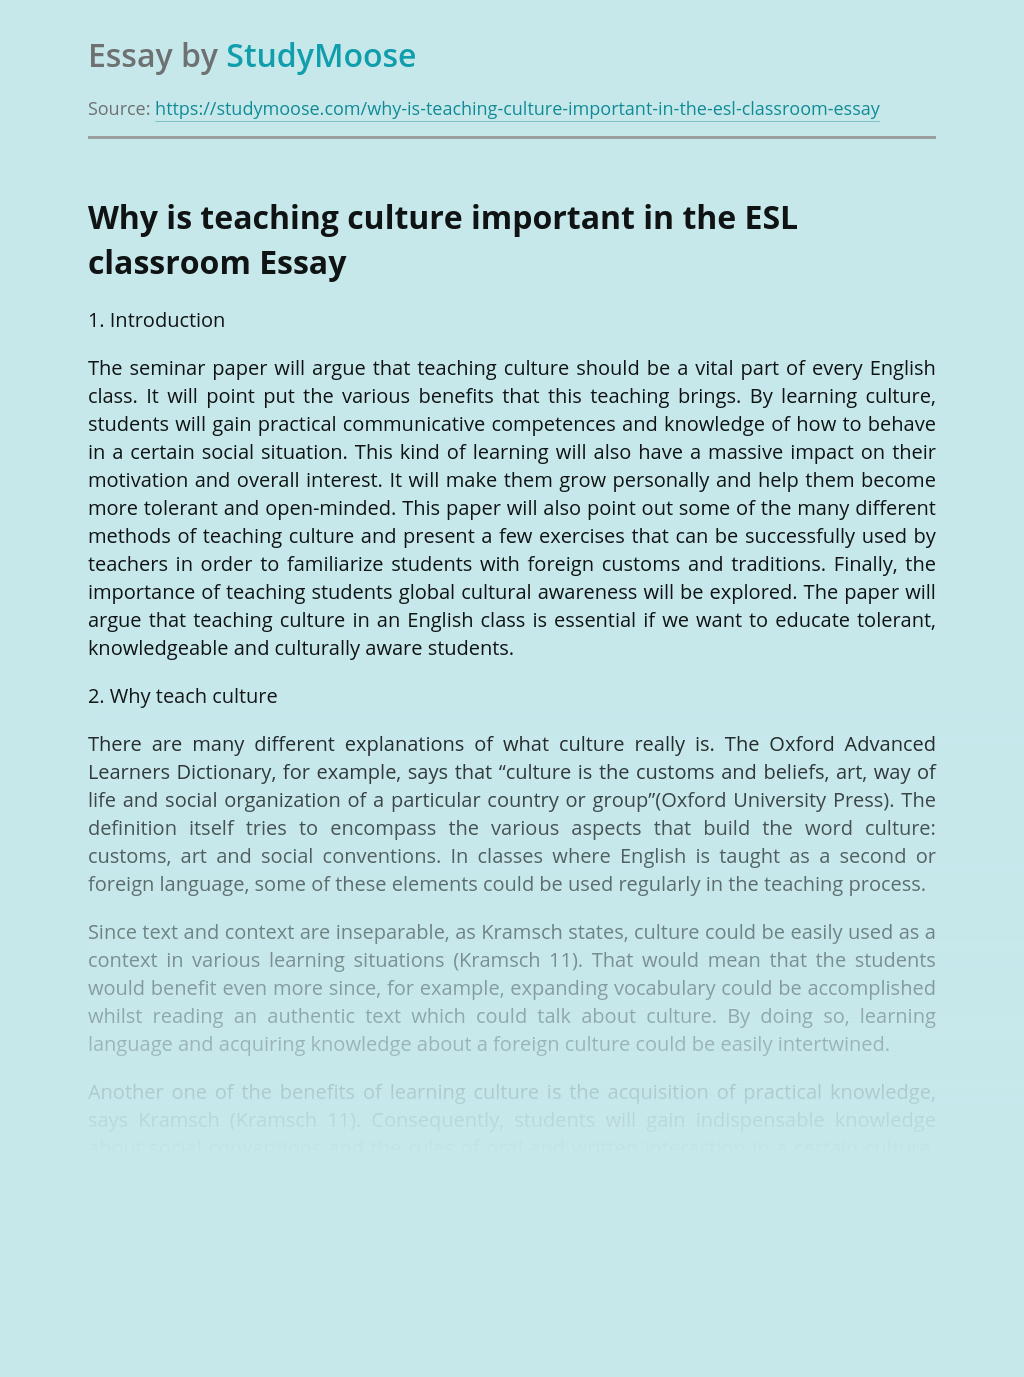 Why is teaching culture important in the ESL classroom